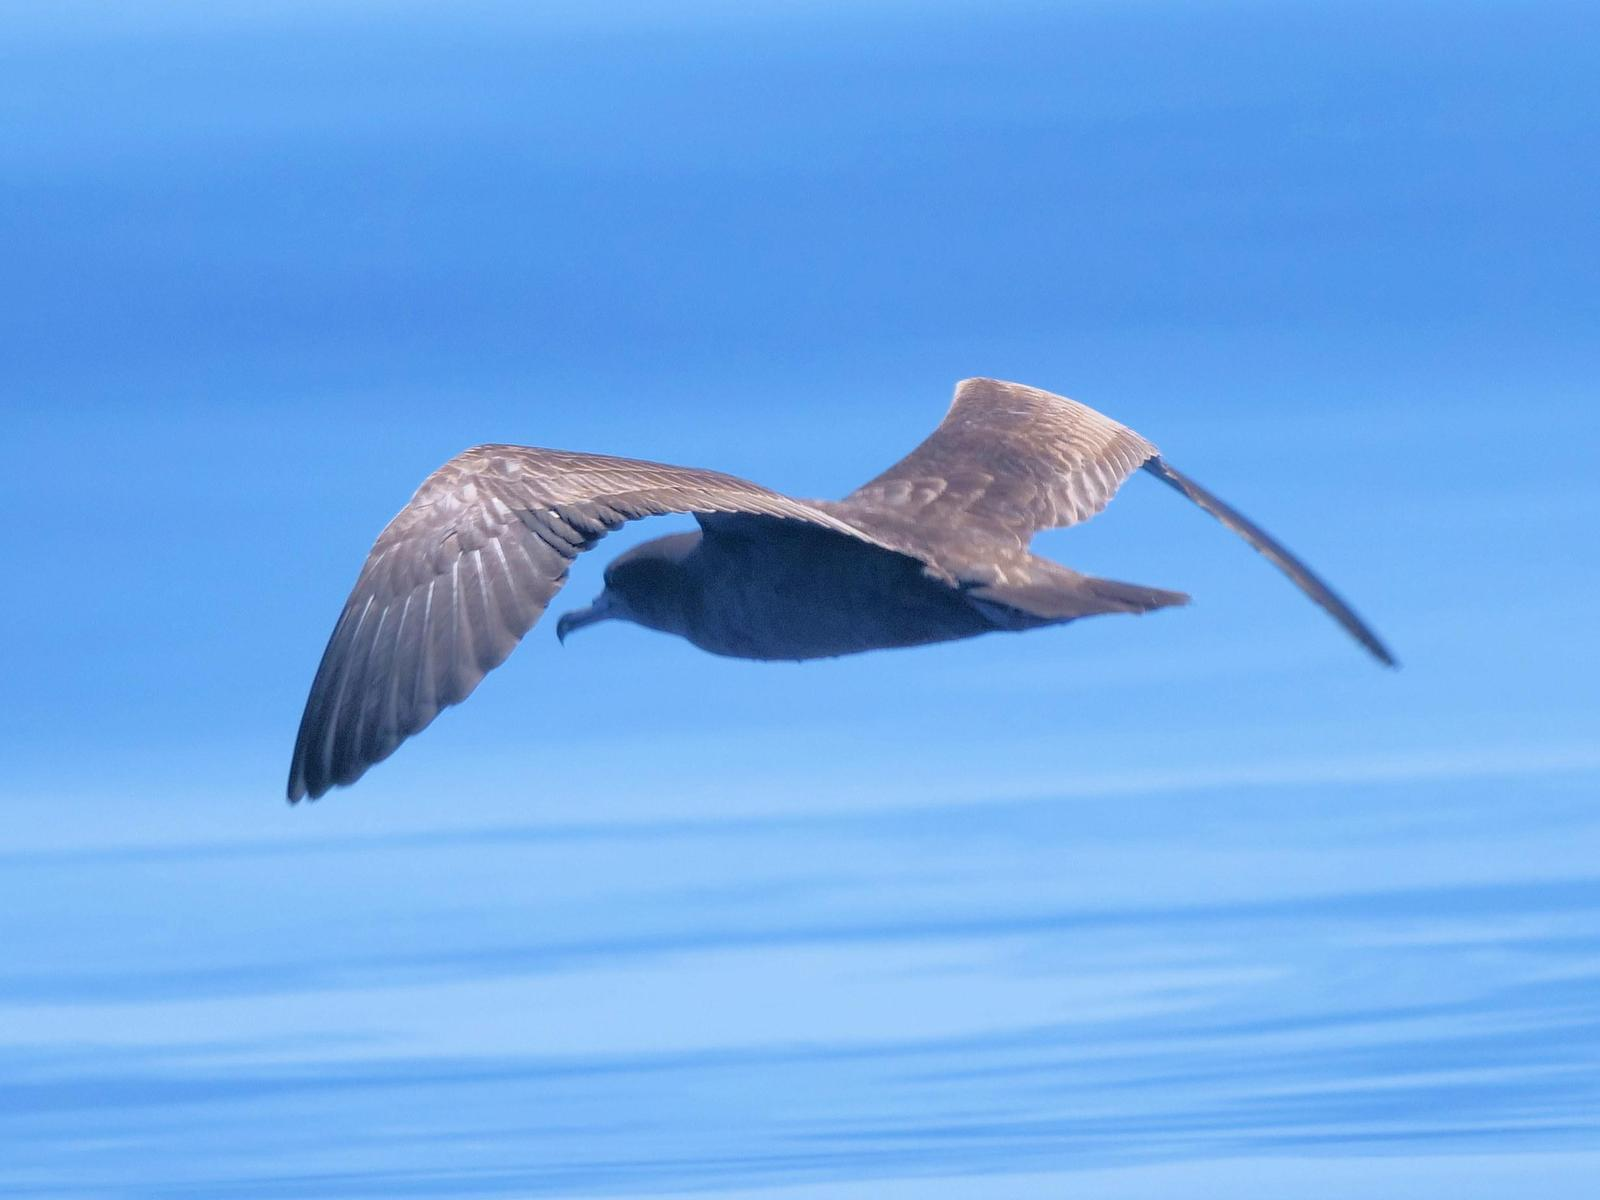 Wedge-tailed Shearwater Photo by Peter Lowe